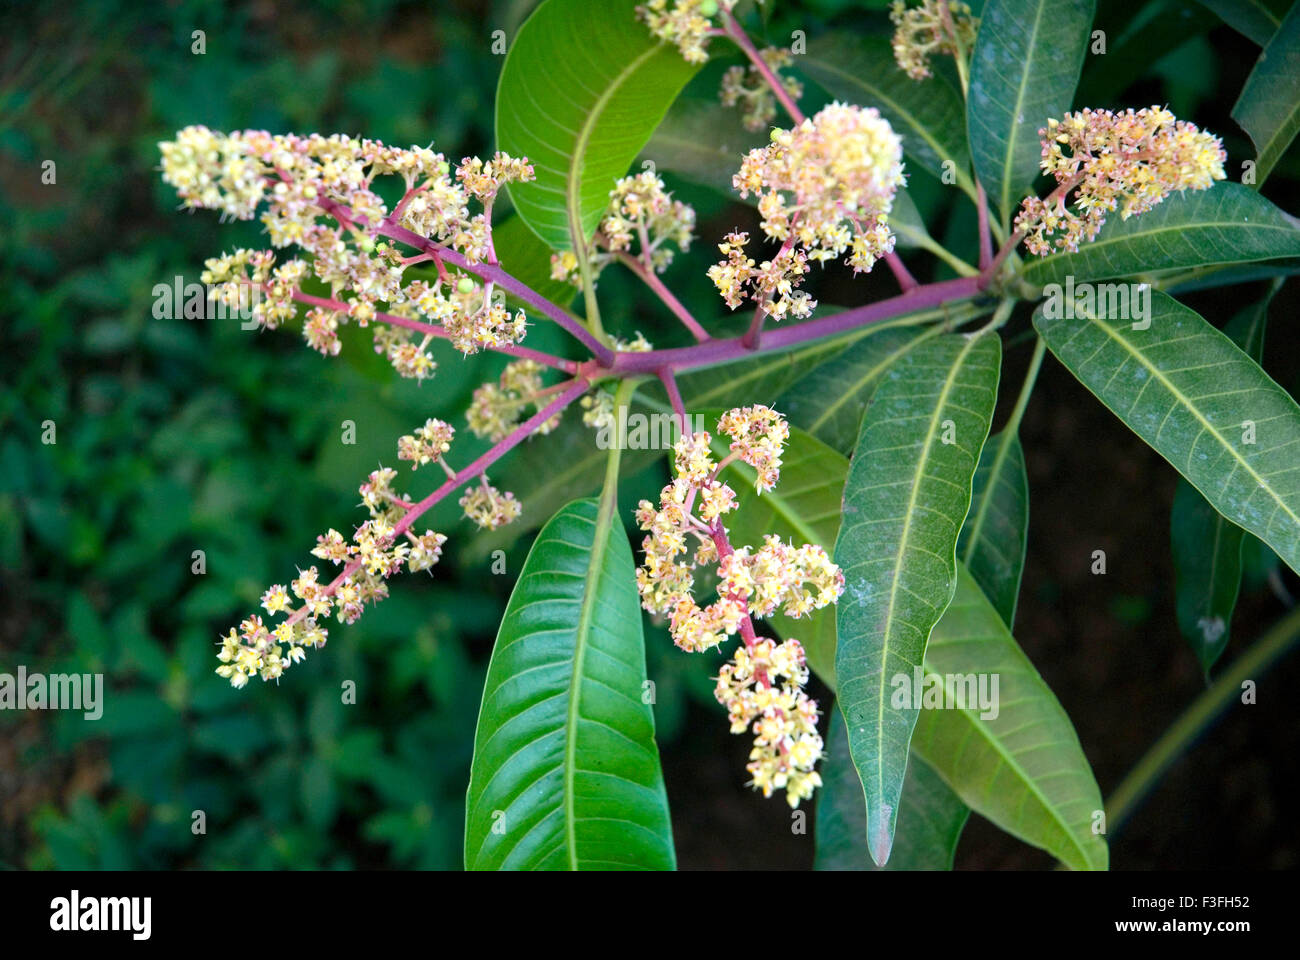 Mango tree ; Latin name Mangifera indica - Stock Image